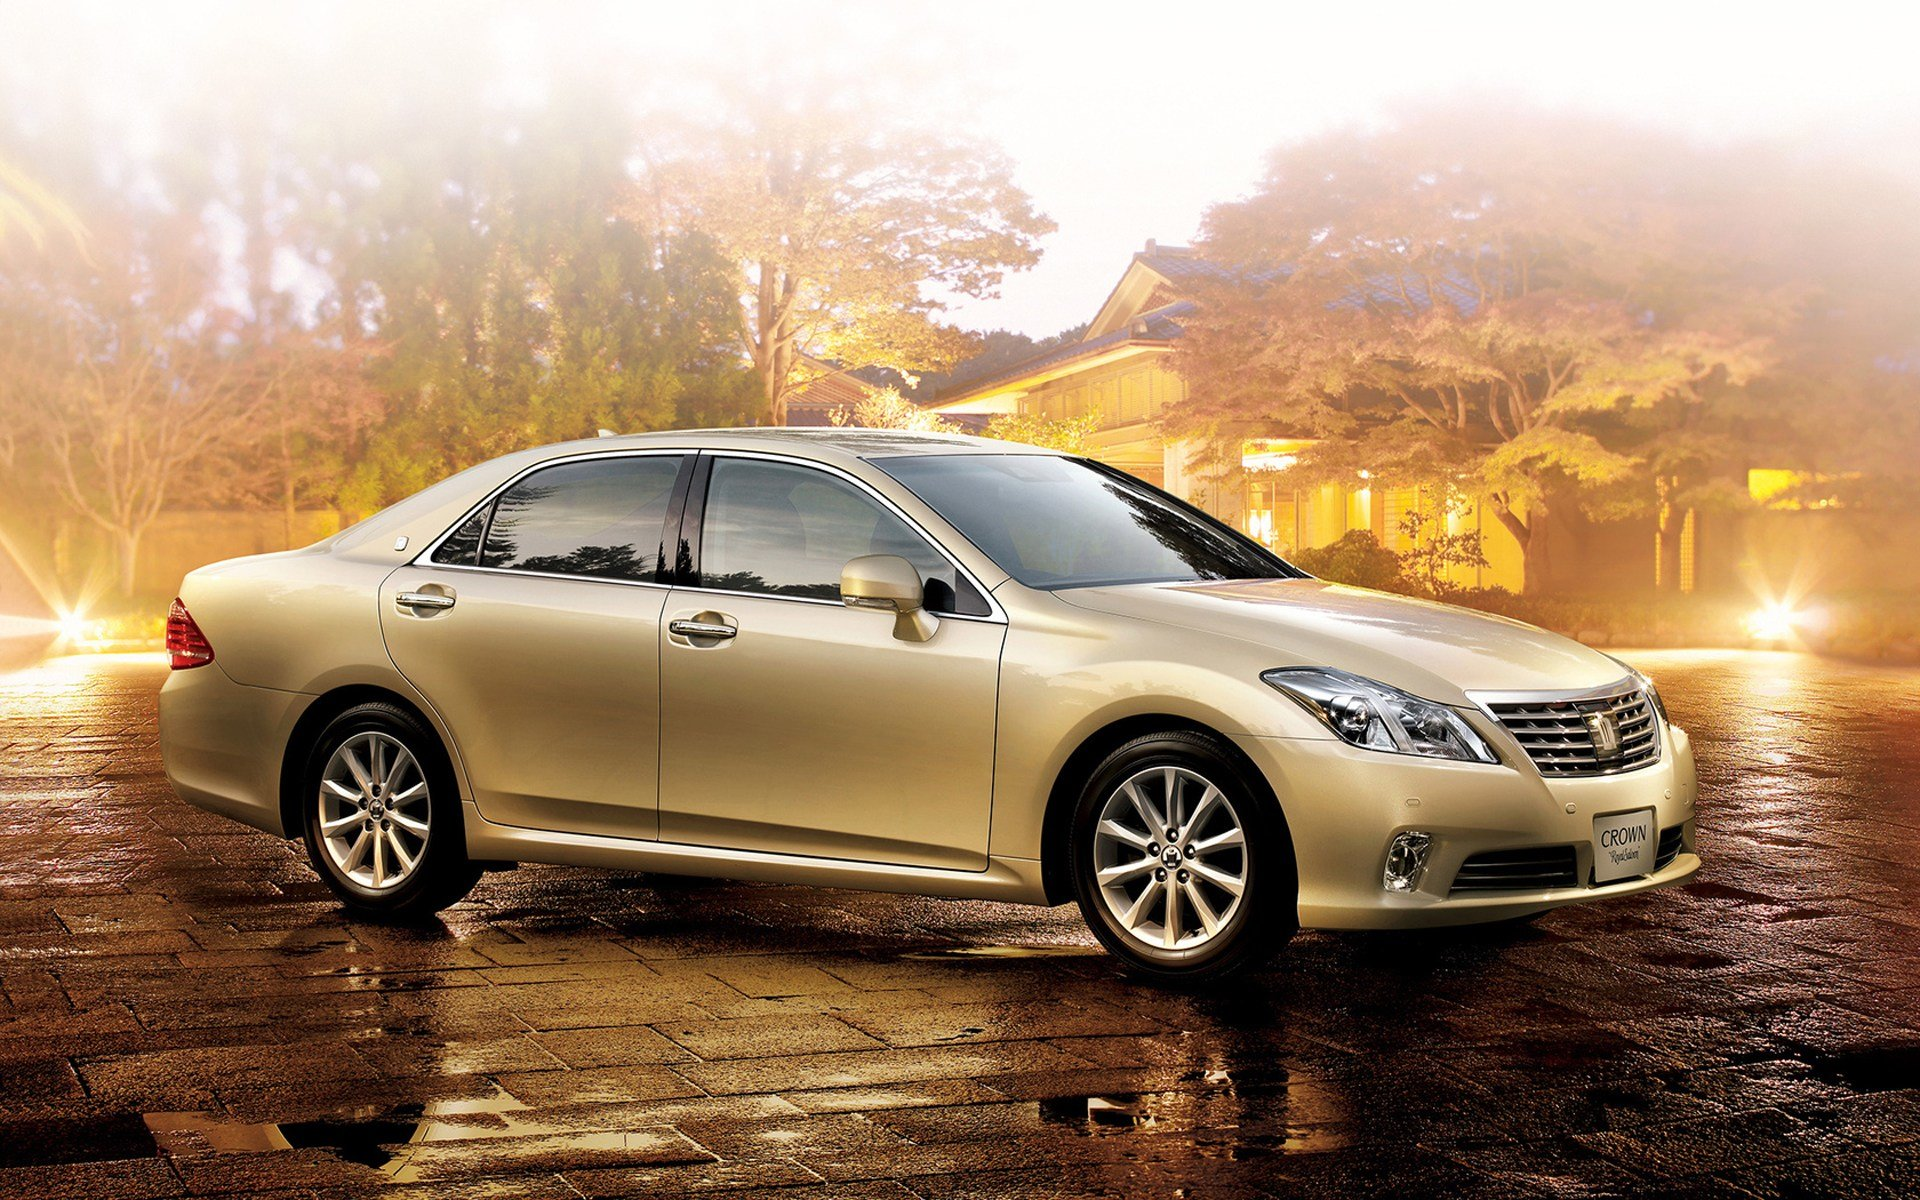 Latest 1 Toyota Crown Royal Saloon Hd Wallpapers Backgrounds Free Download